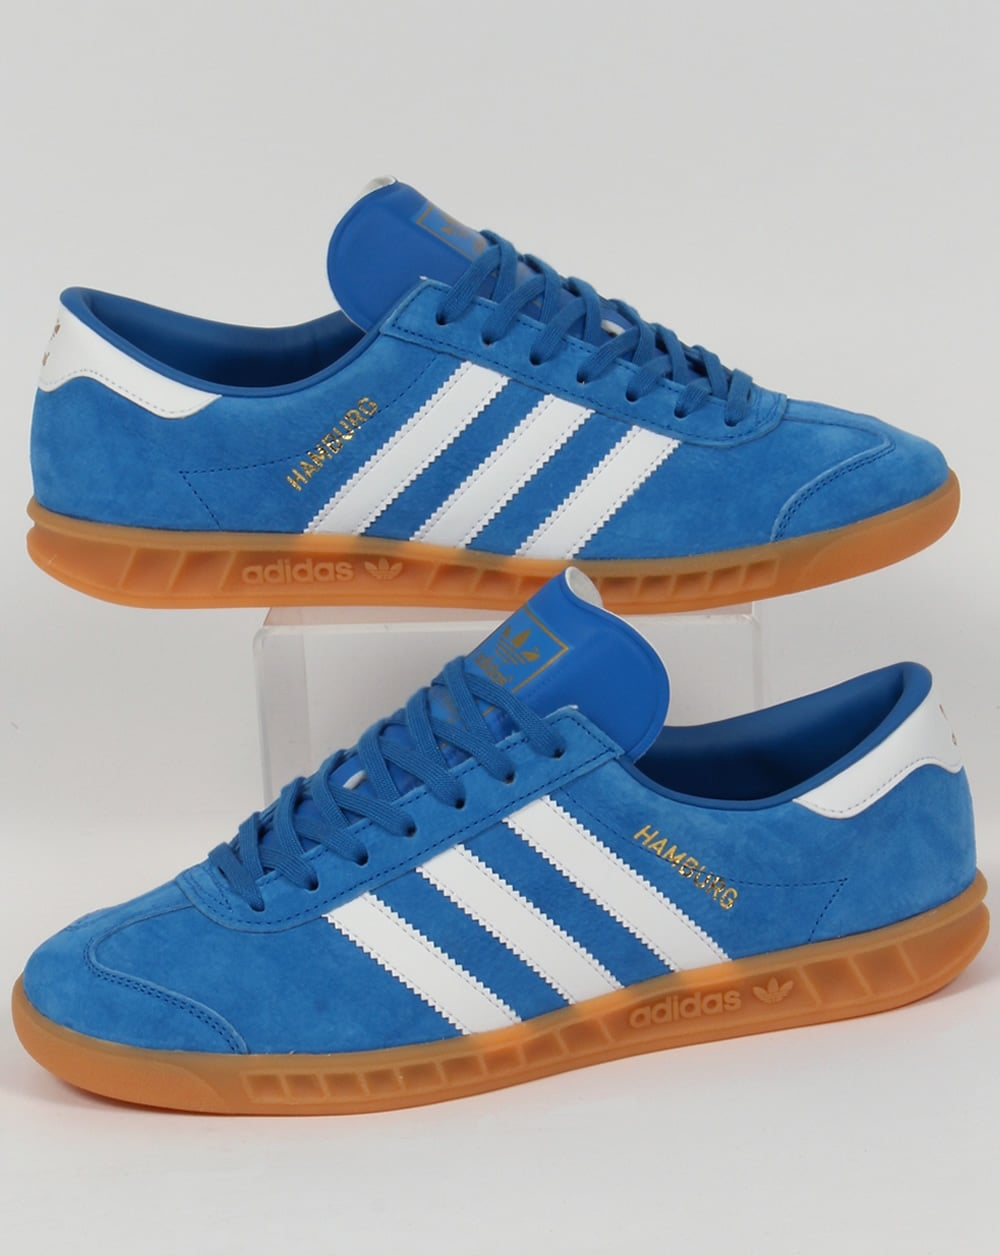 Adidas Shoes Blue And Red Stripes